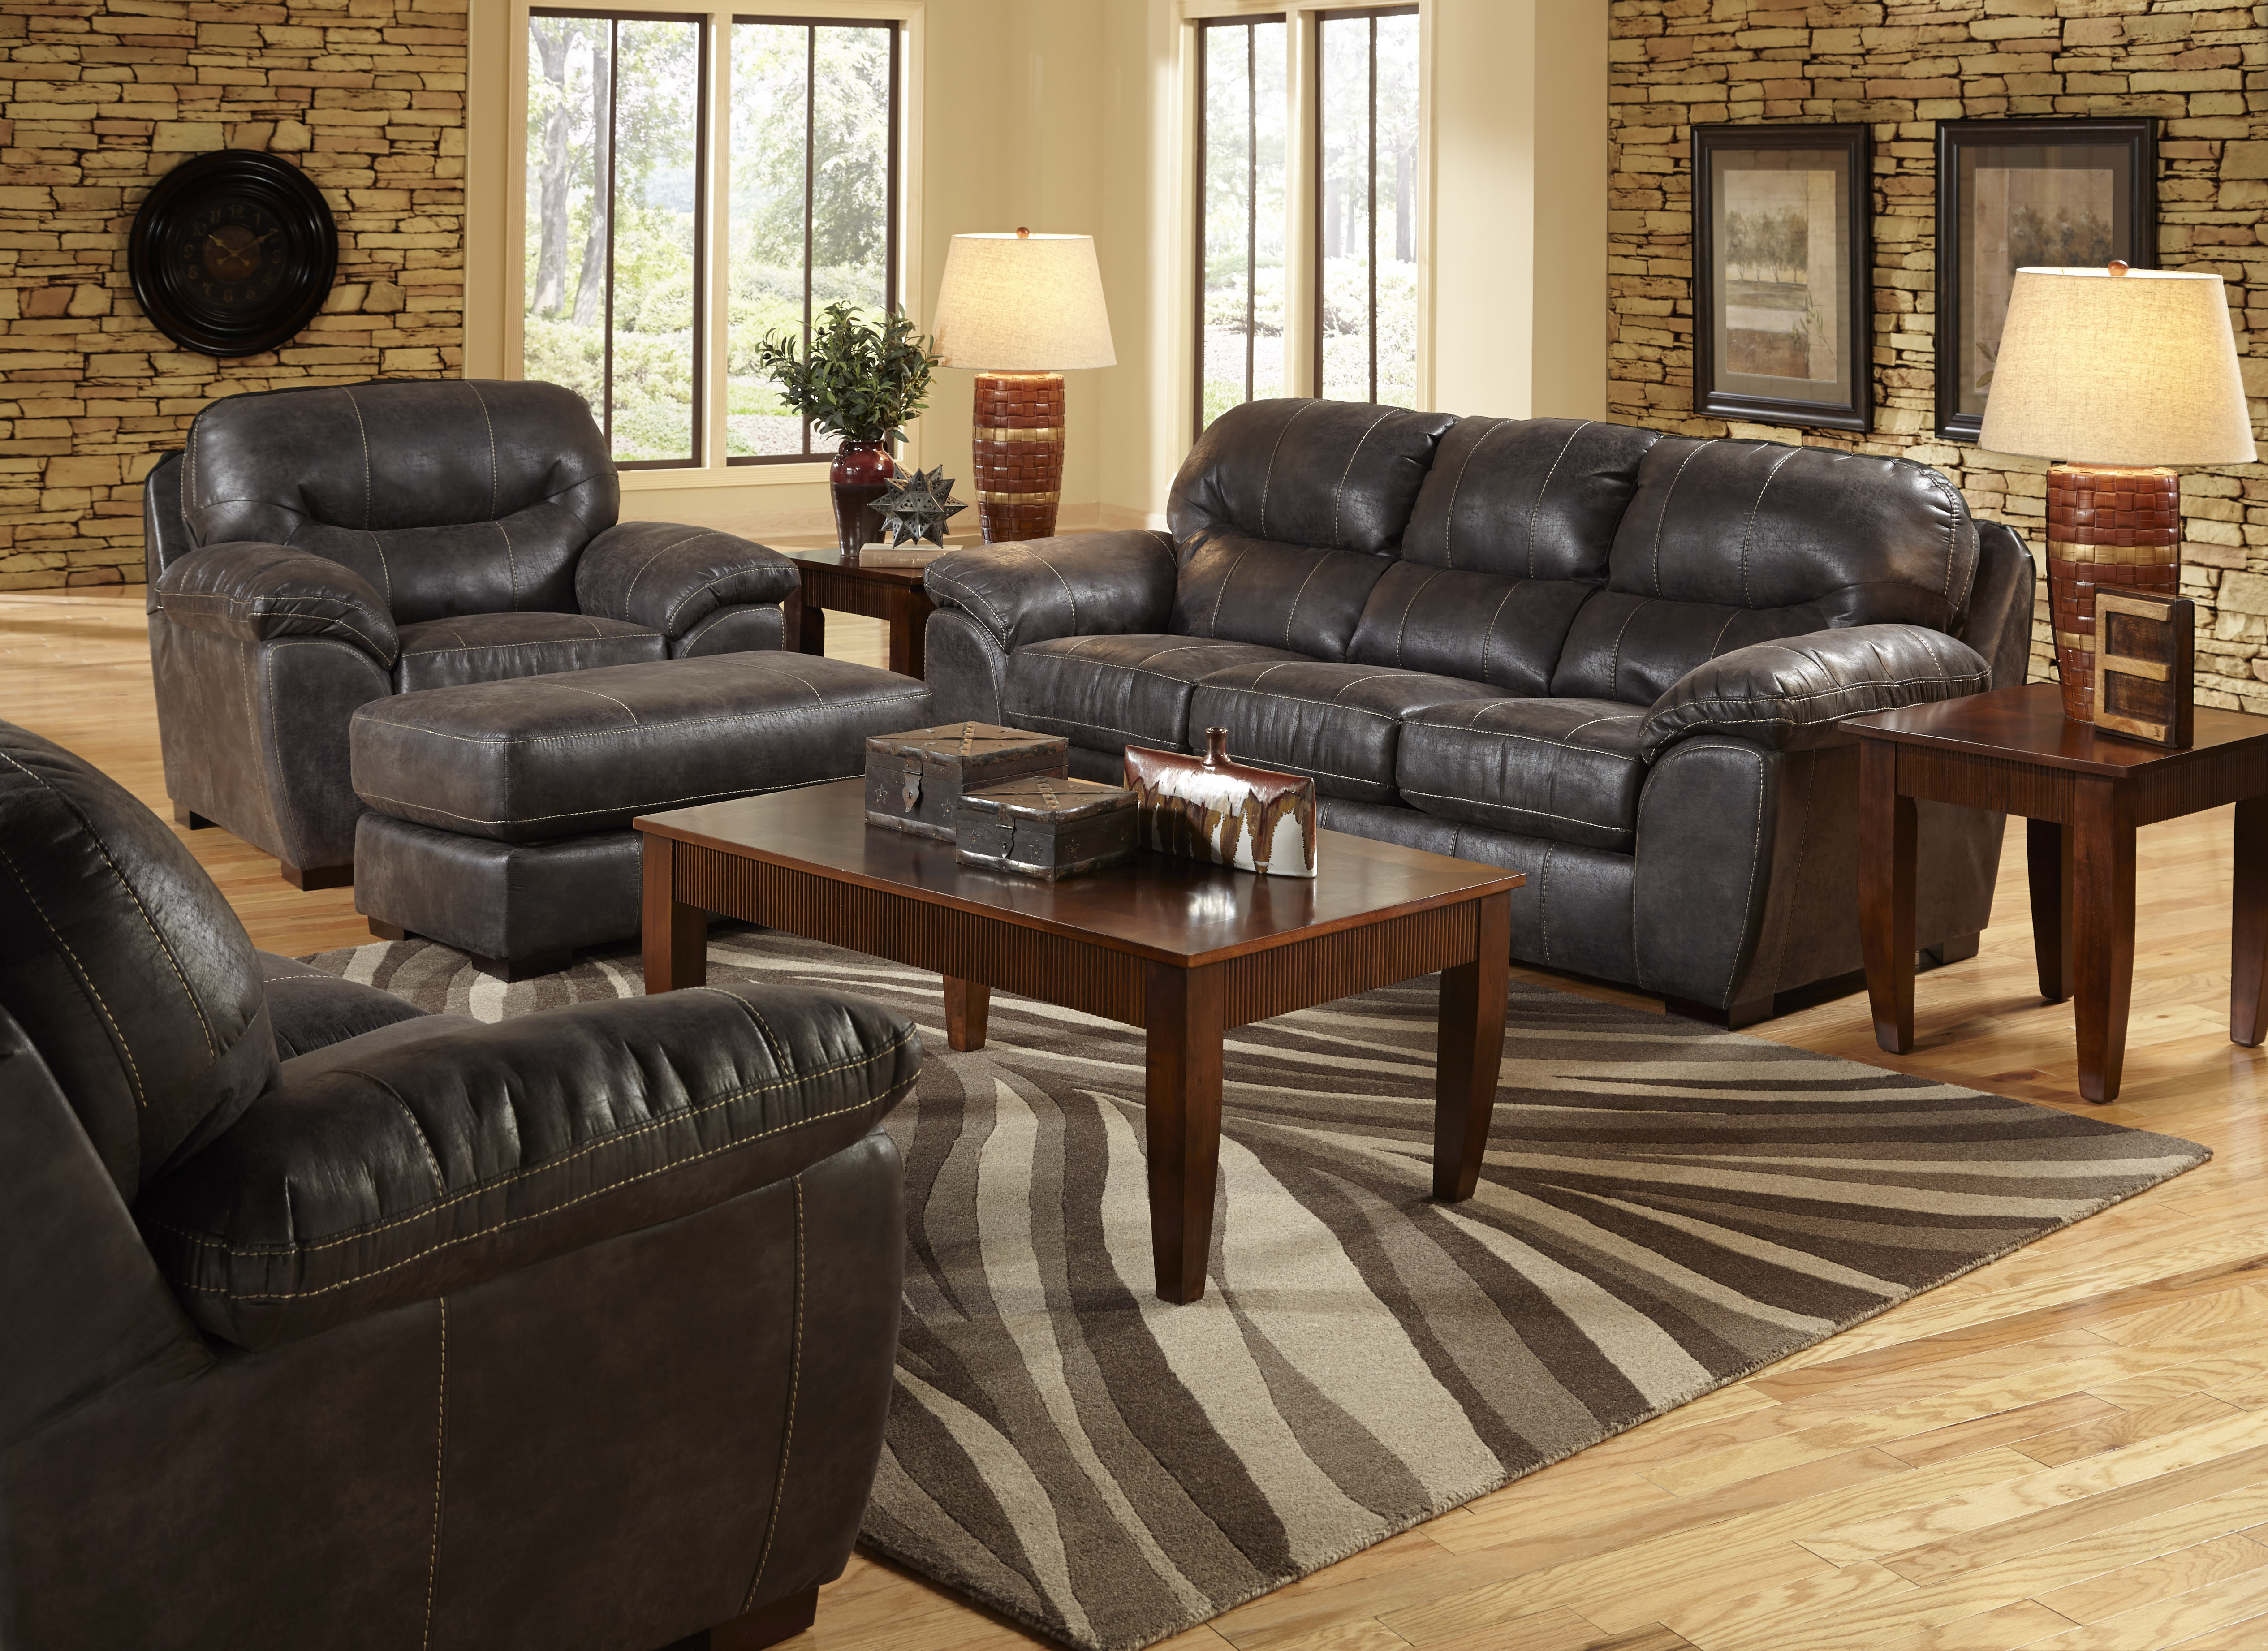 Grant 4453 Bonded Leather Sofa Collection   Sofas and Sectionals